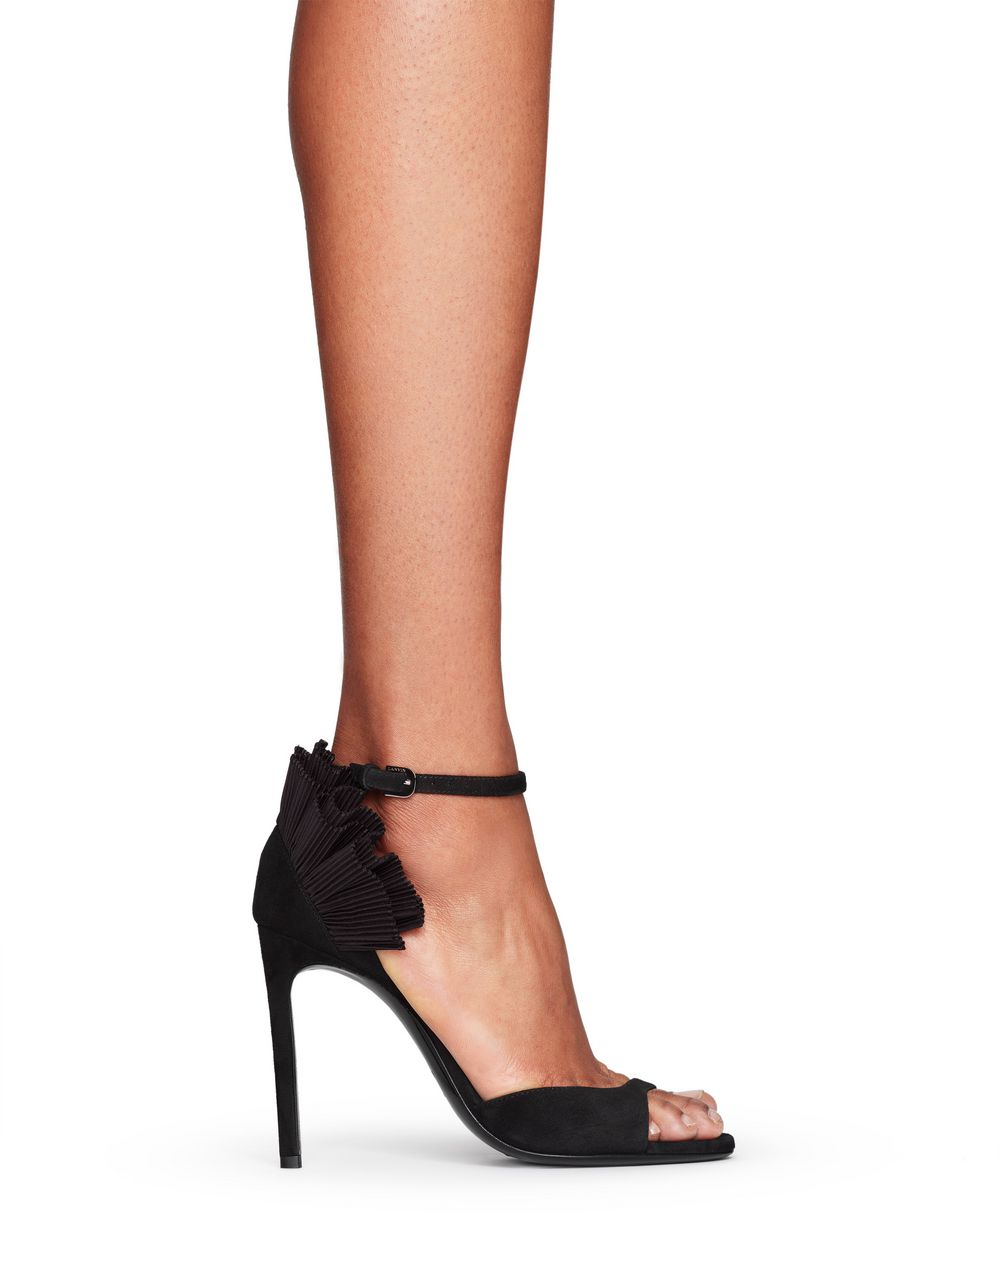 HIGH-HEELED RUFFLE SANDAL - Lanvin